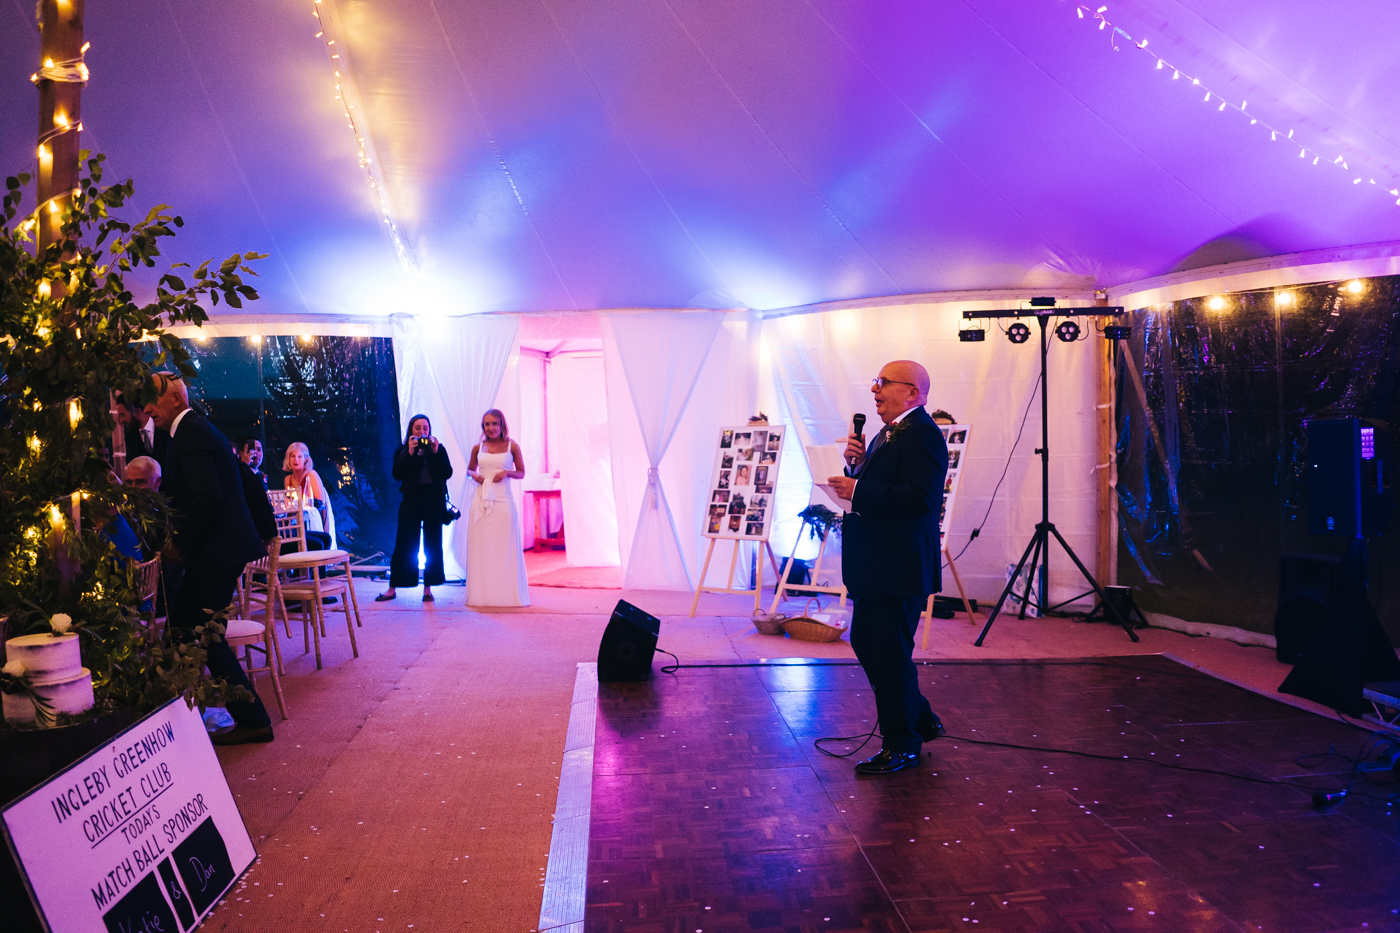 north-yorkshire-marquee-wedding-photographer-teesside-north-east-wedding-photography-0089.jpg